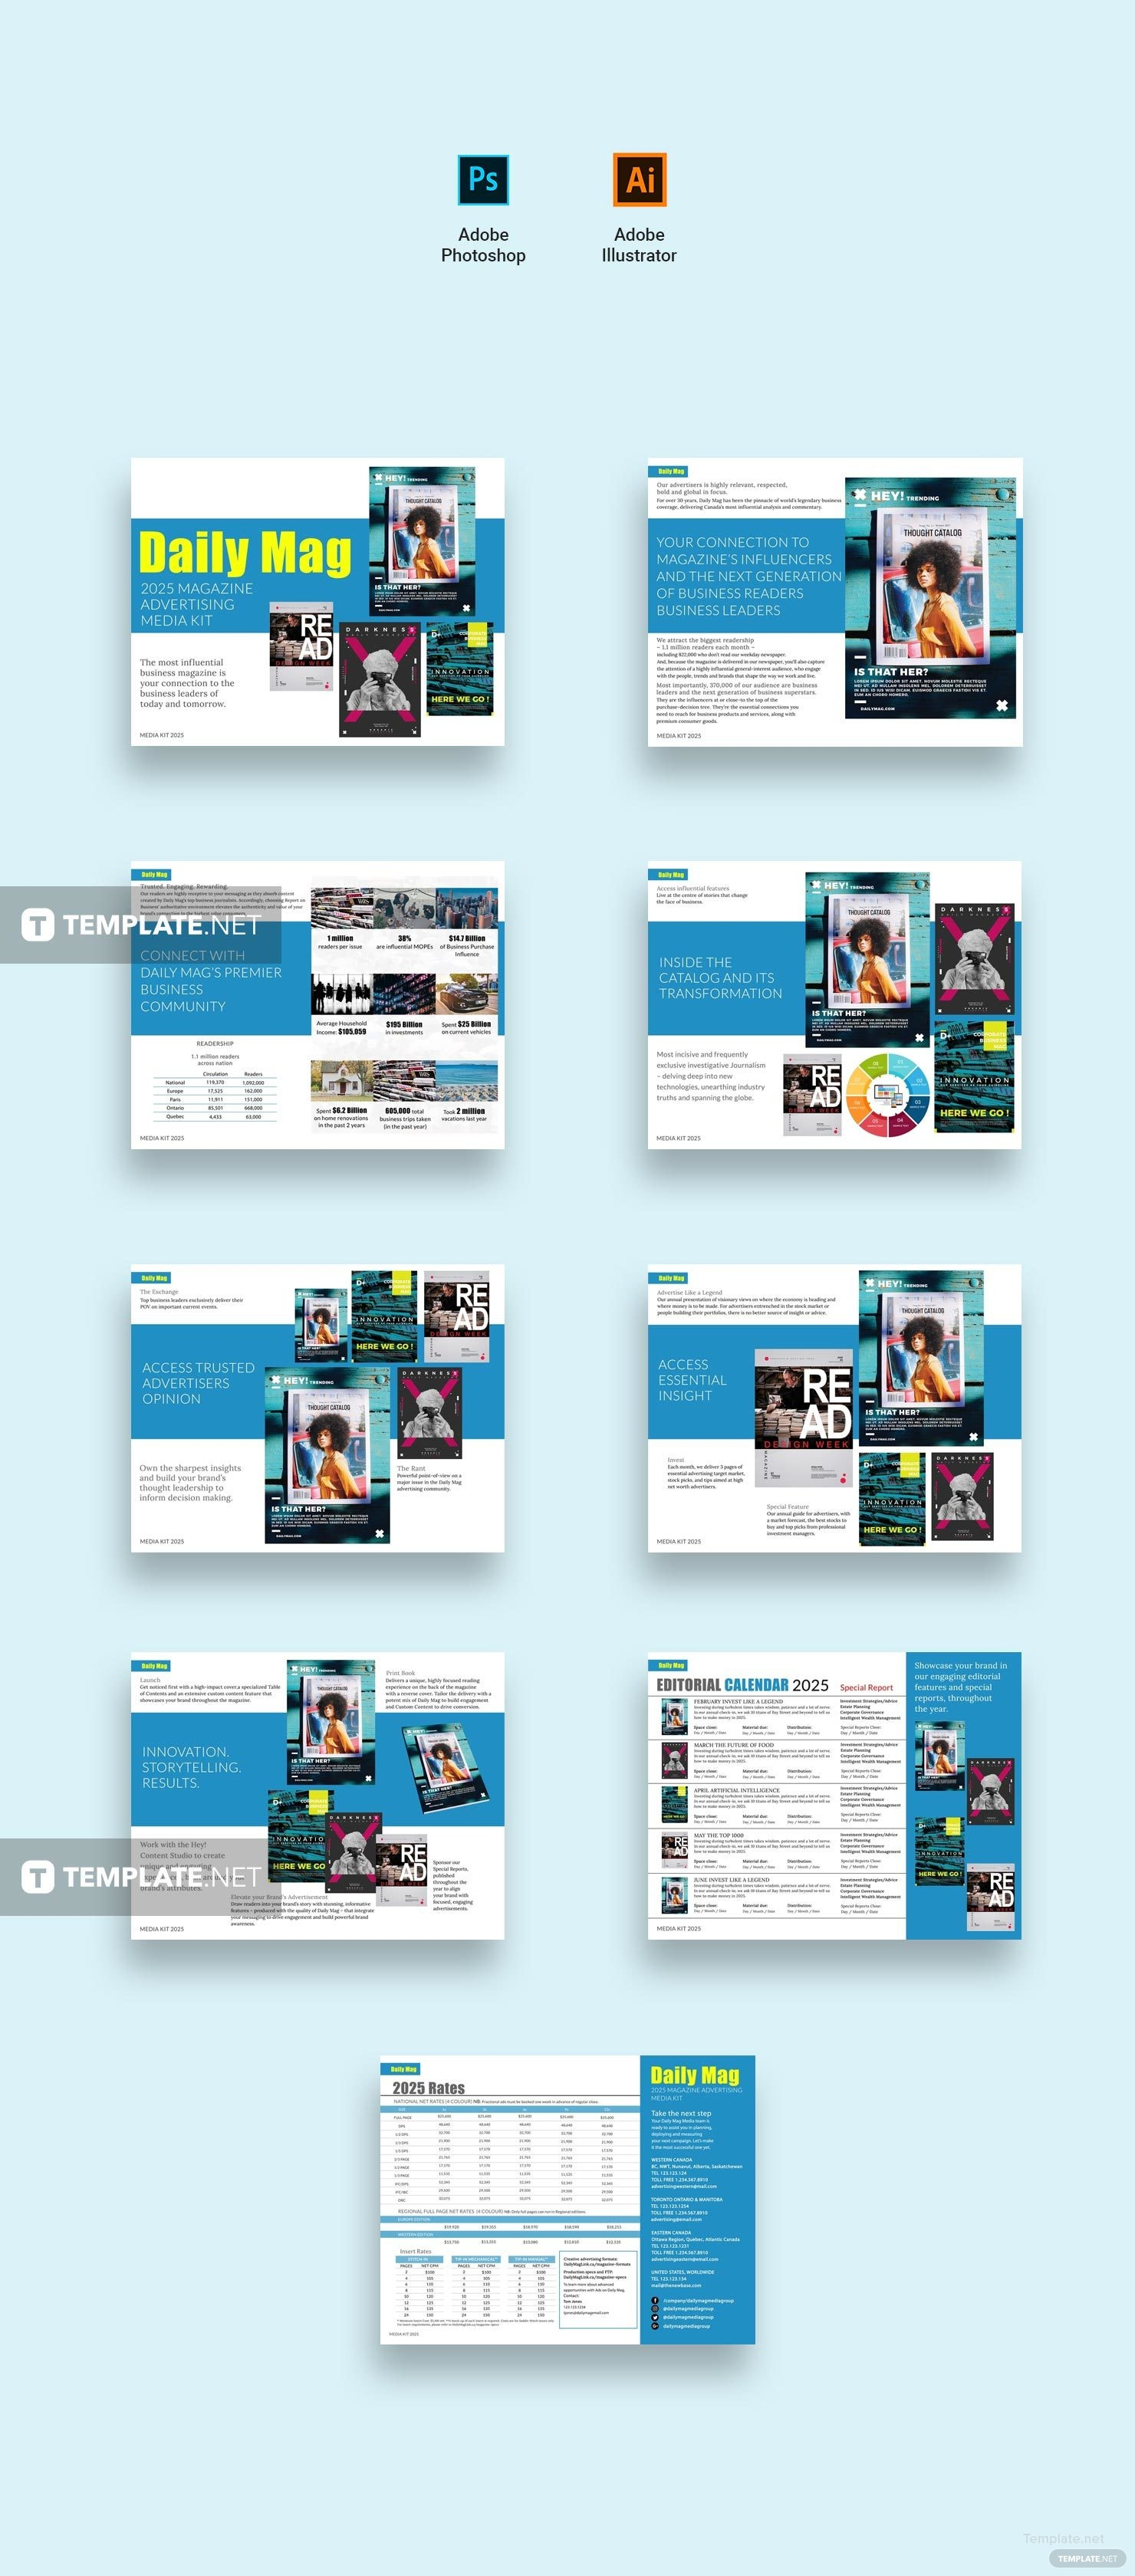 advertising media kit template - free magazine advertising media kit template in adobe